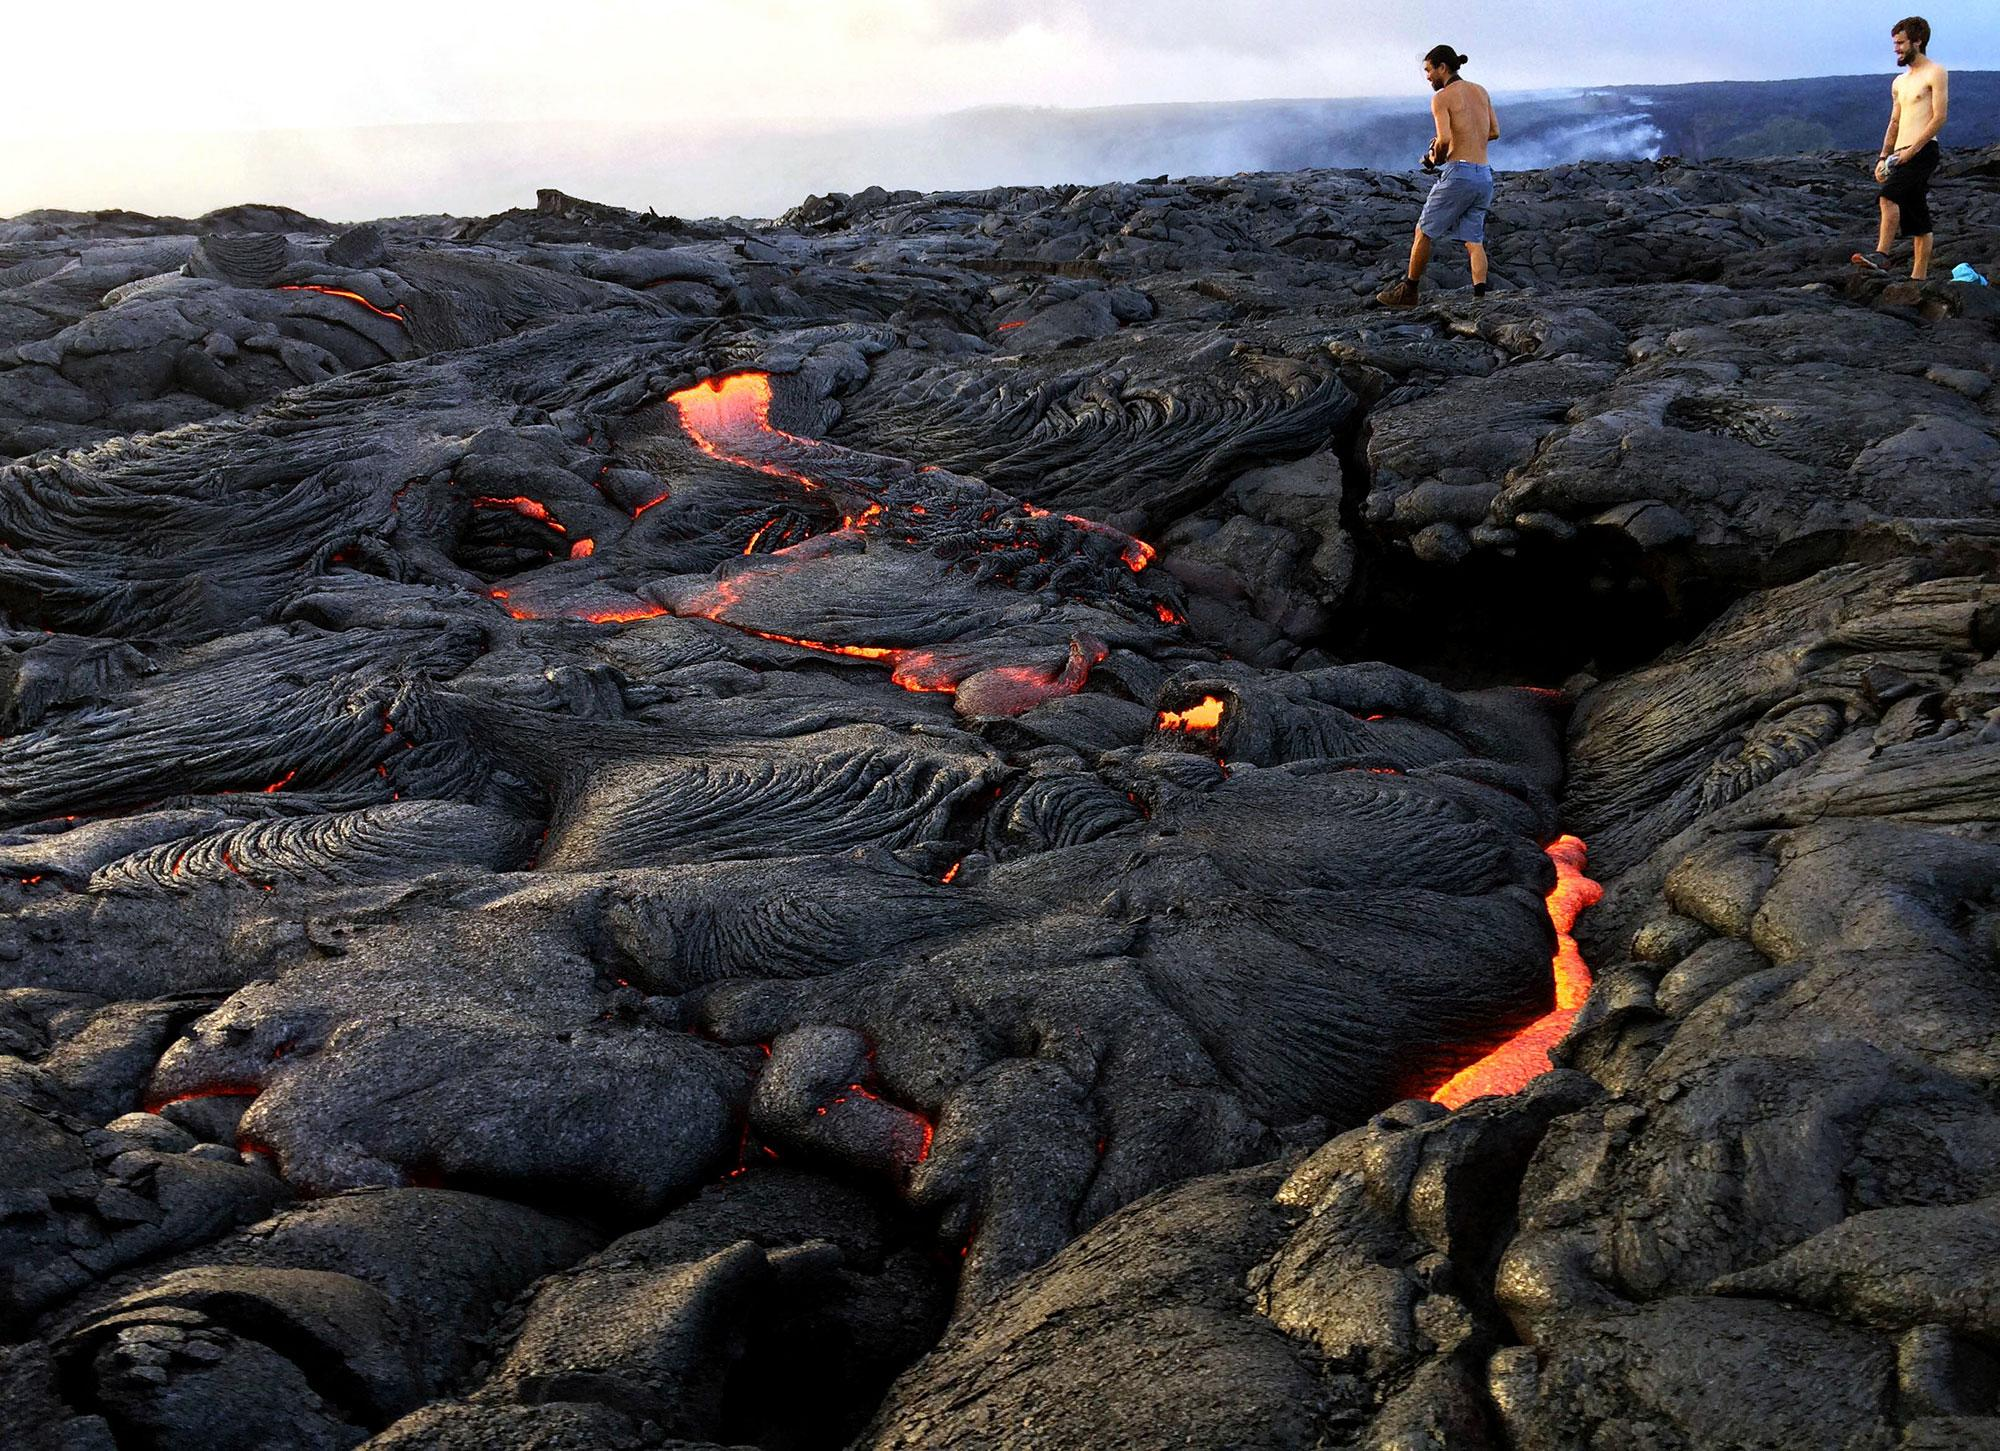 buddhist single men in hawaii national park Sign up and find single buddhist men in pahala that you might want to meet hawaii county pahala single buddhist men hawaii national park volcano captain.